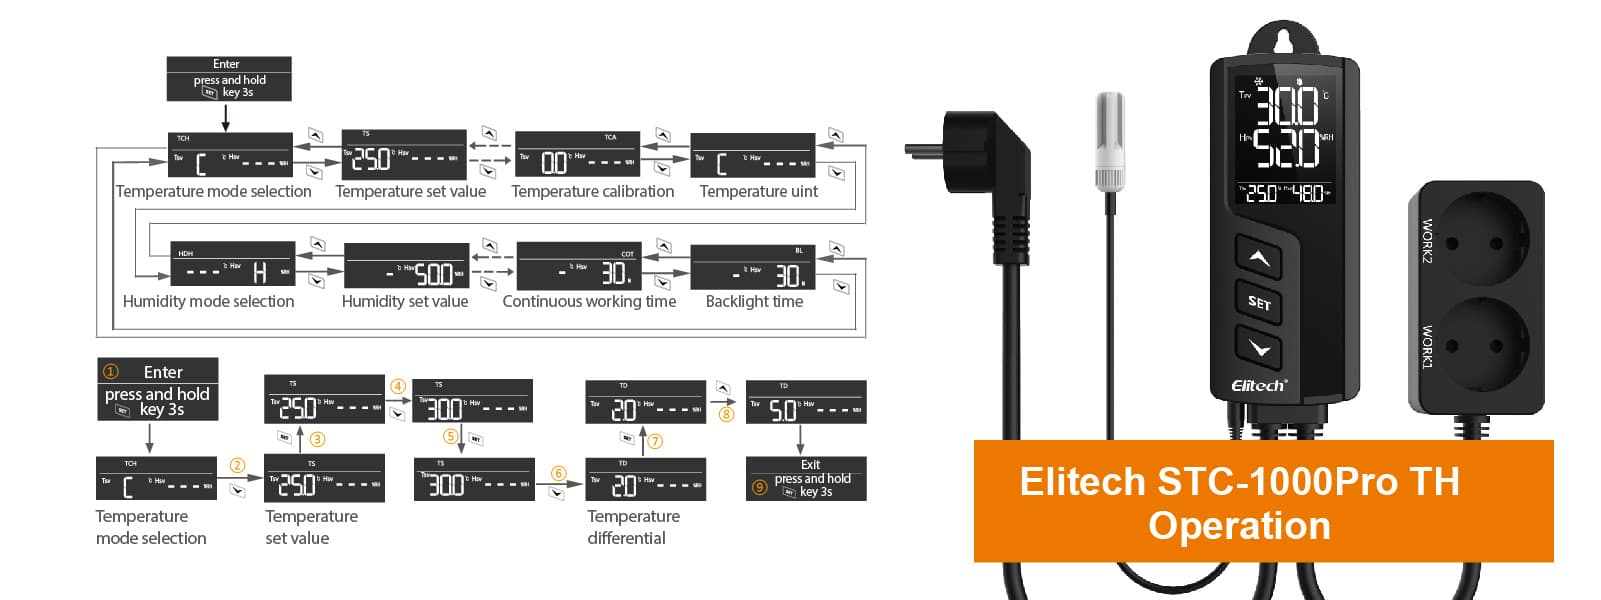 Elitech STC-1000Pro TH Temperature and Humidity Controller Operation-Elitech UK